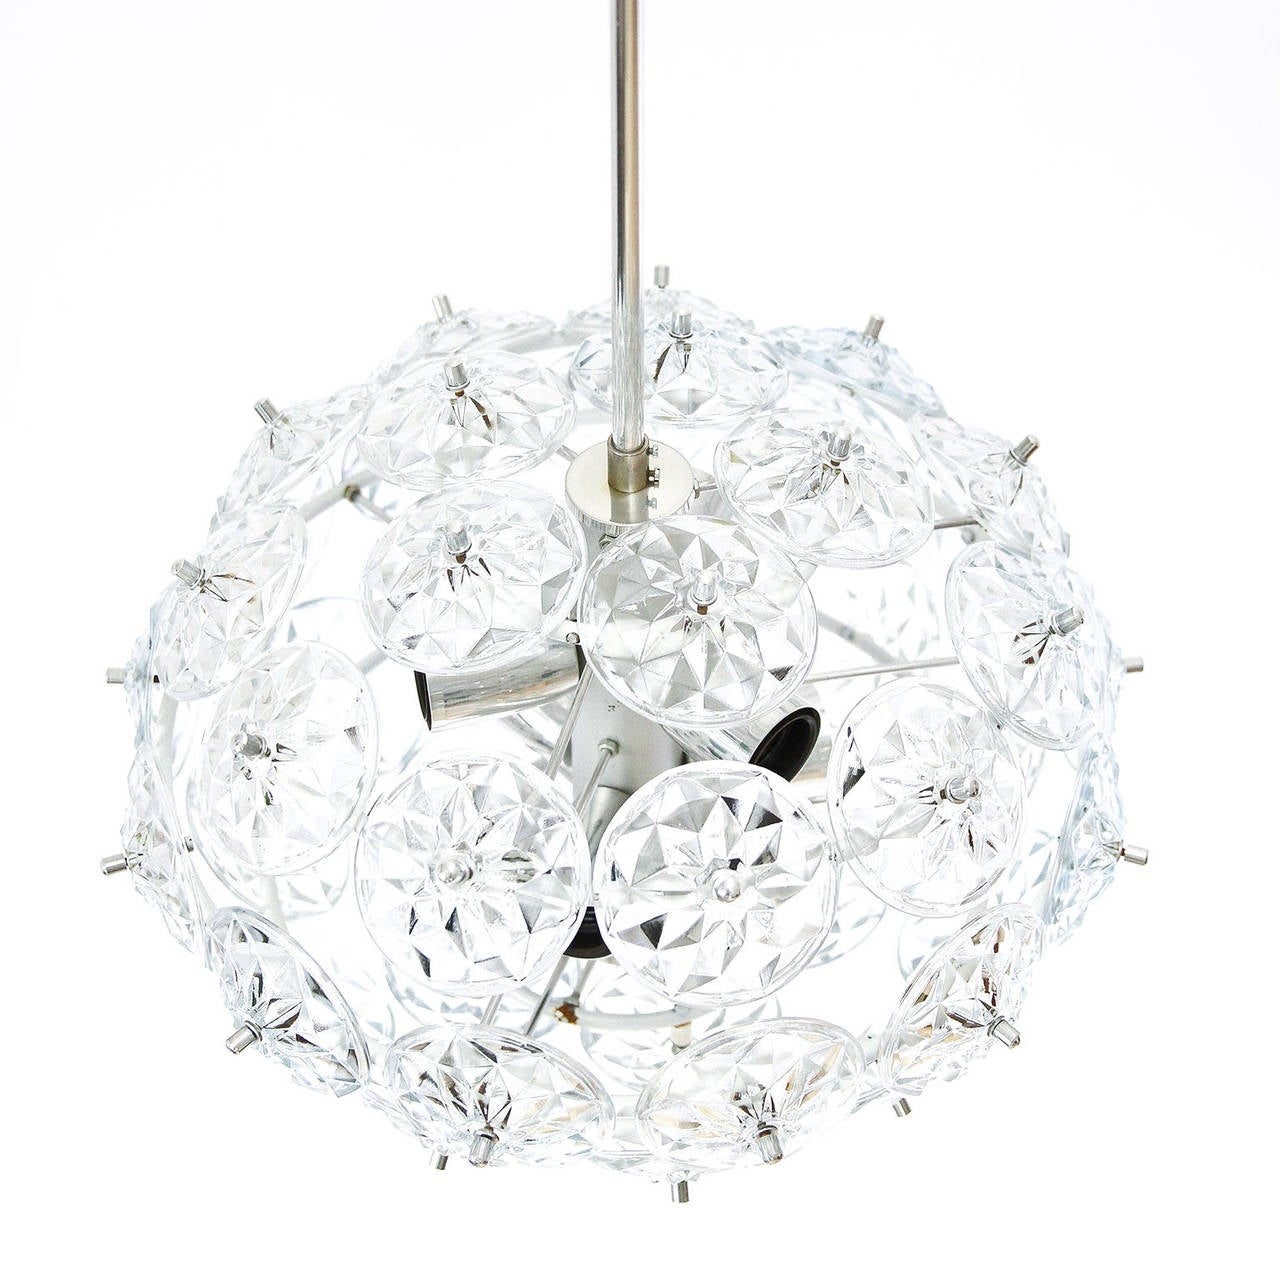 Mid-Century Modern Sputnik Chandelier Kinkeldey Style, Glass Chrome, 1960s For Sale